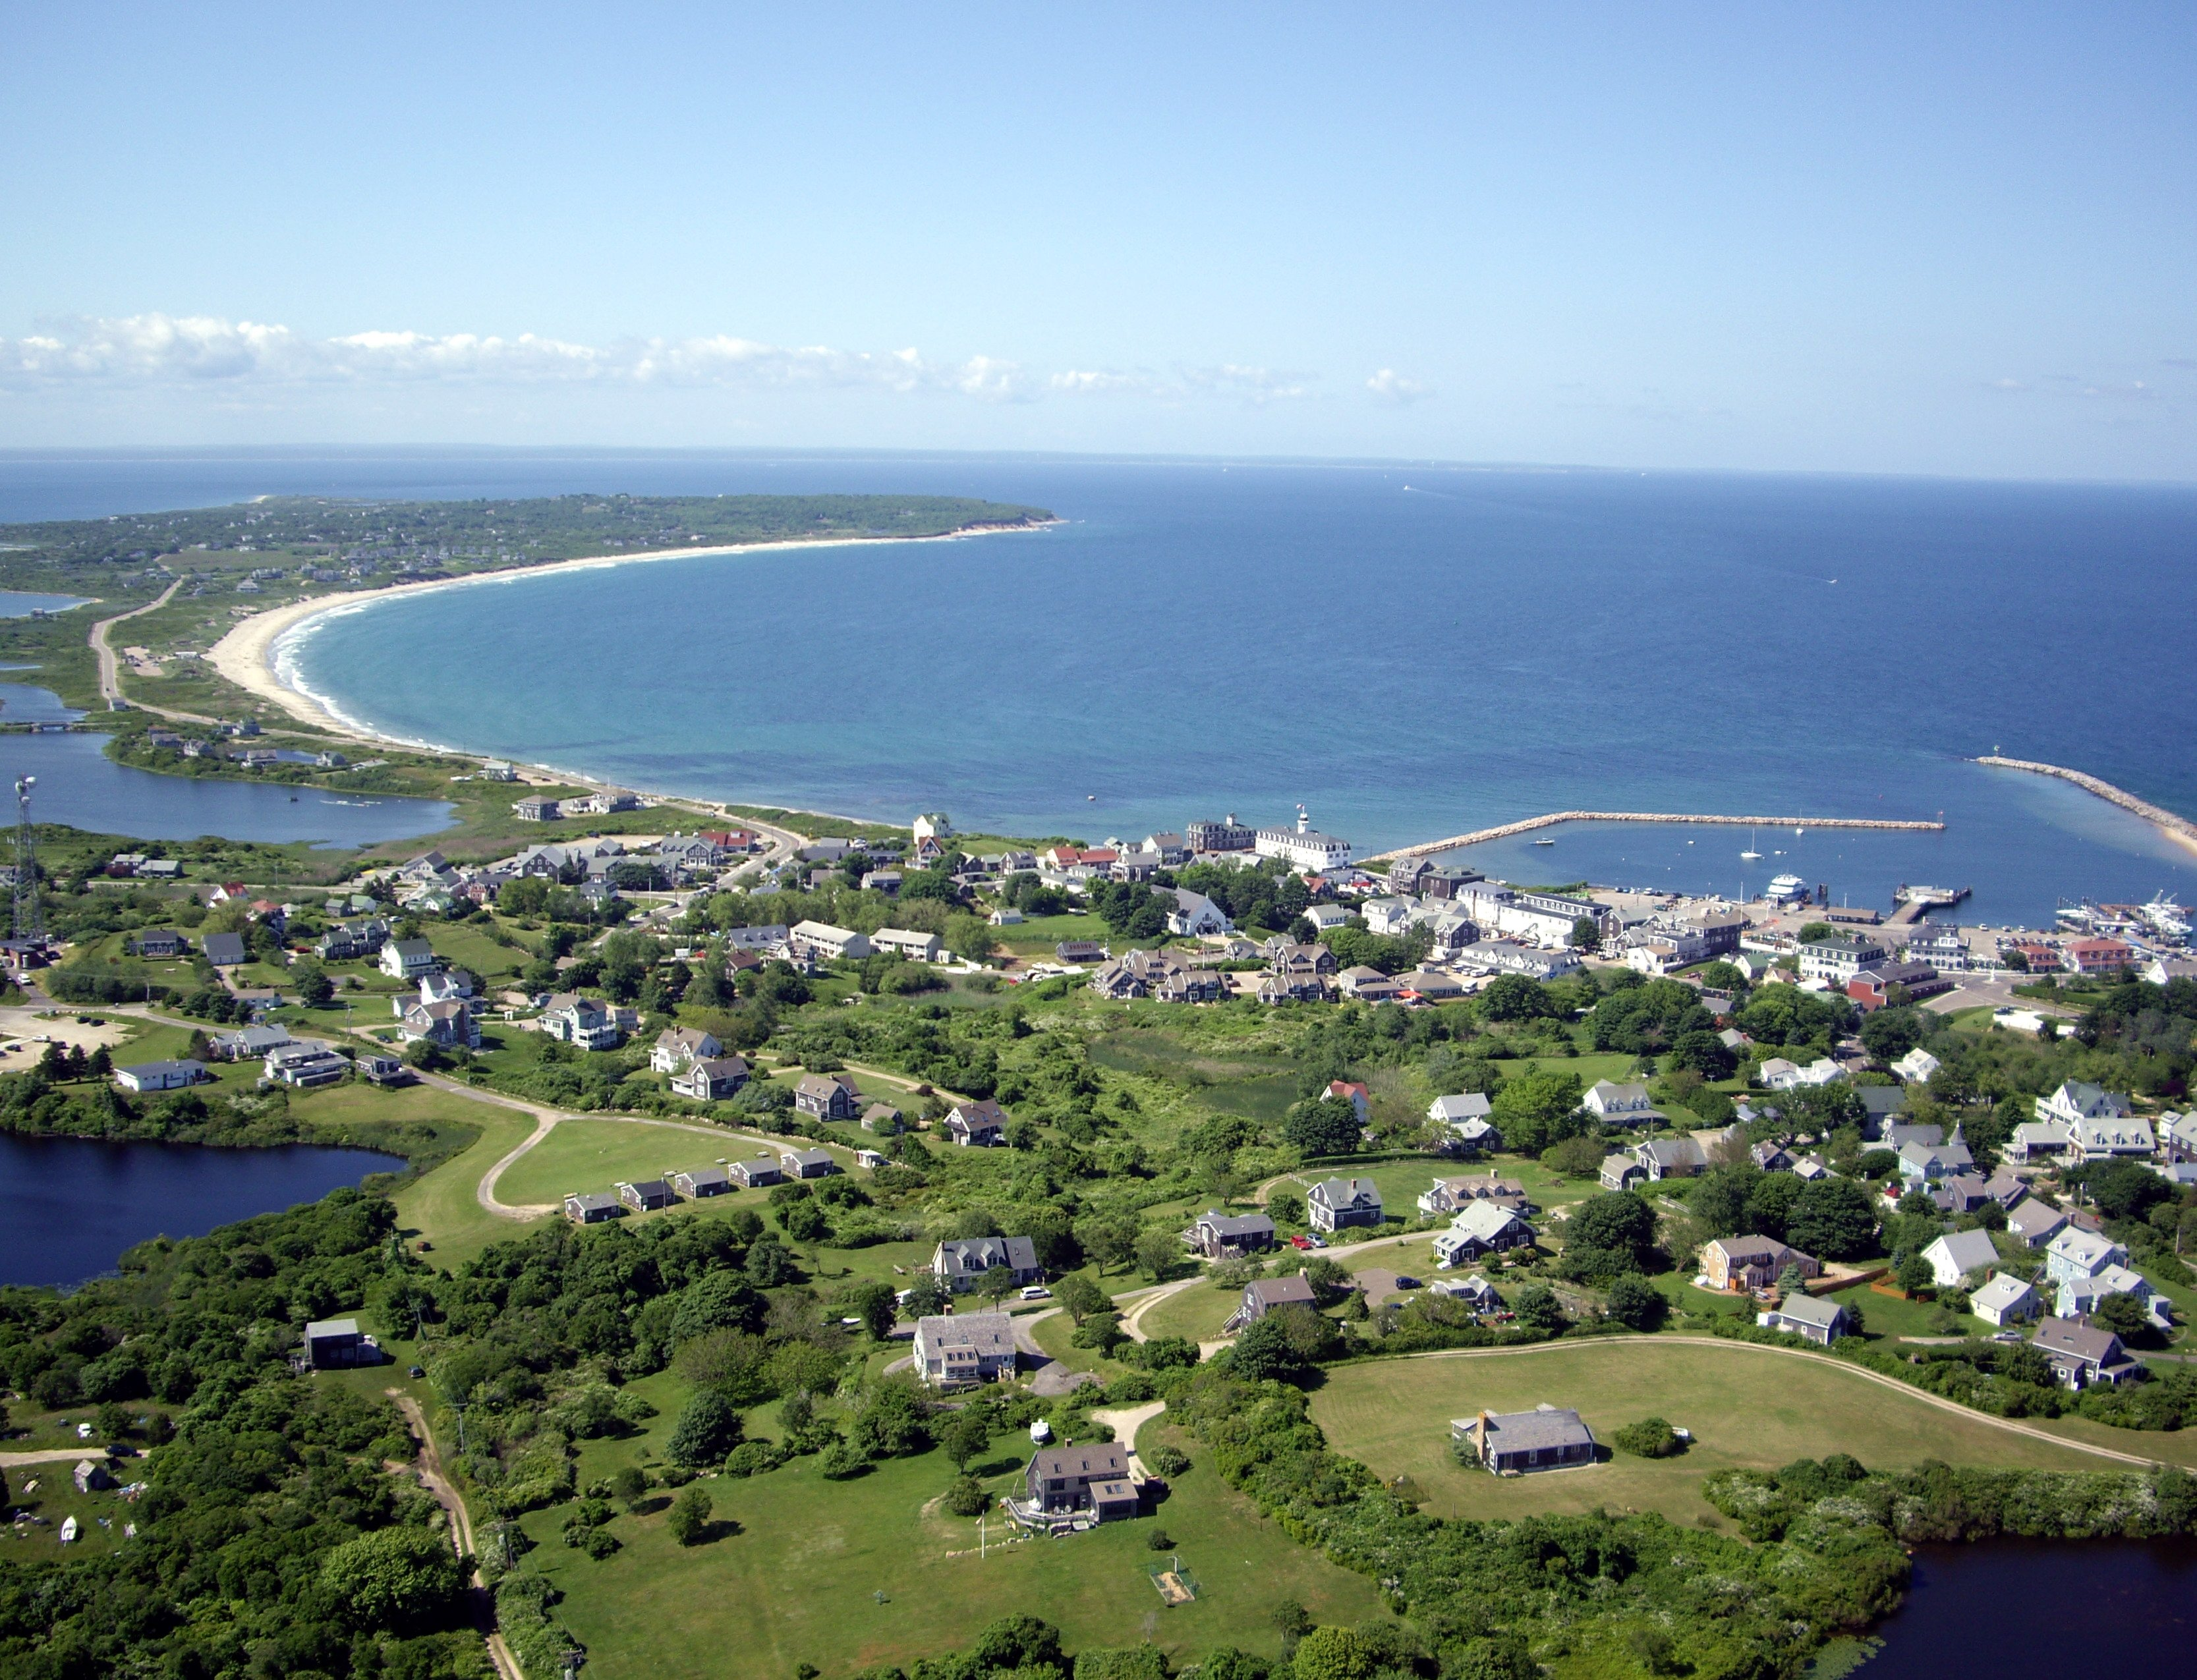 10 Must-See Places to Visit on Block Island